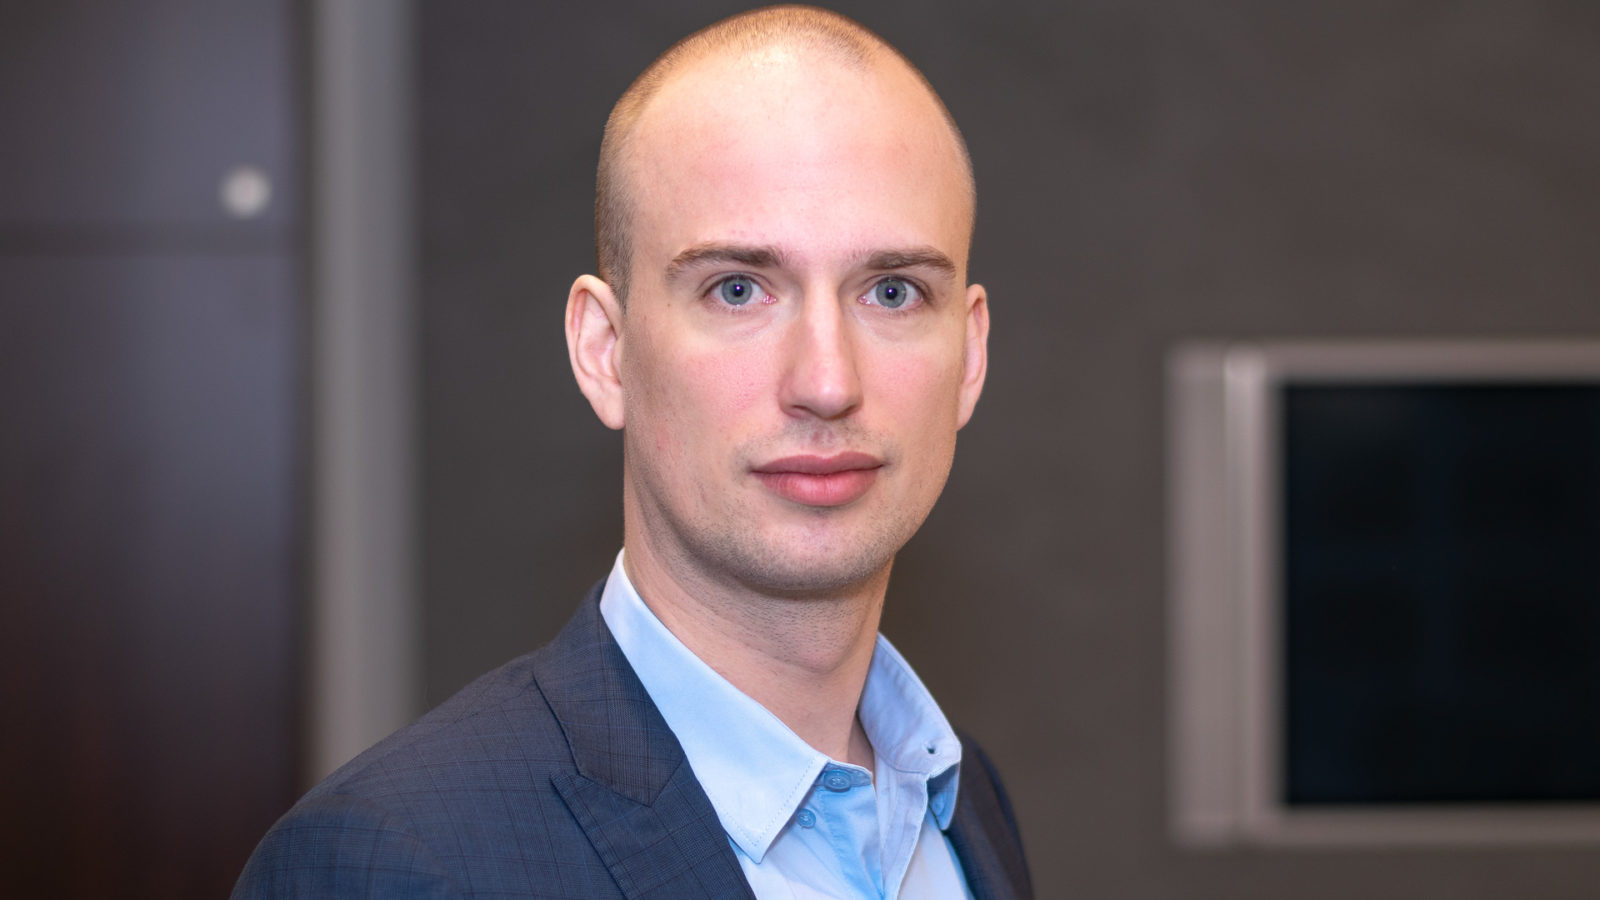 Fabian Hoffmann, Project Manager